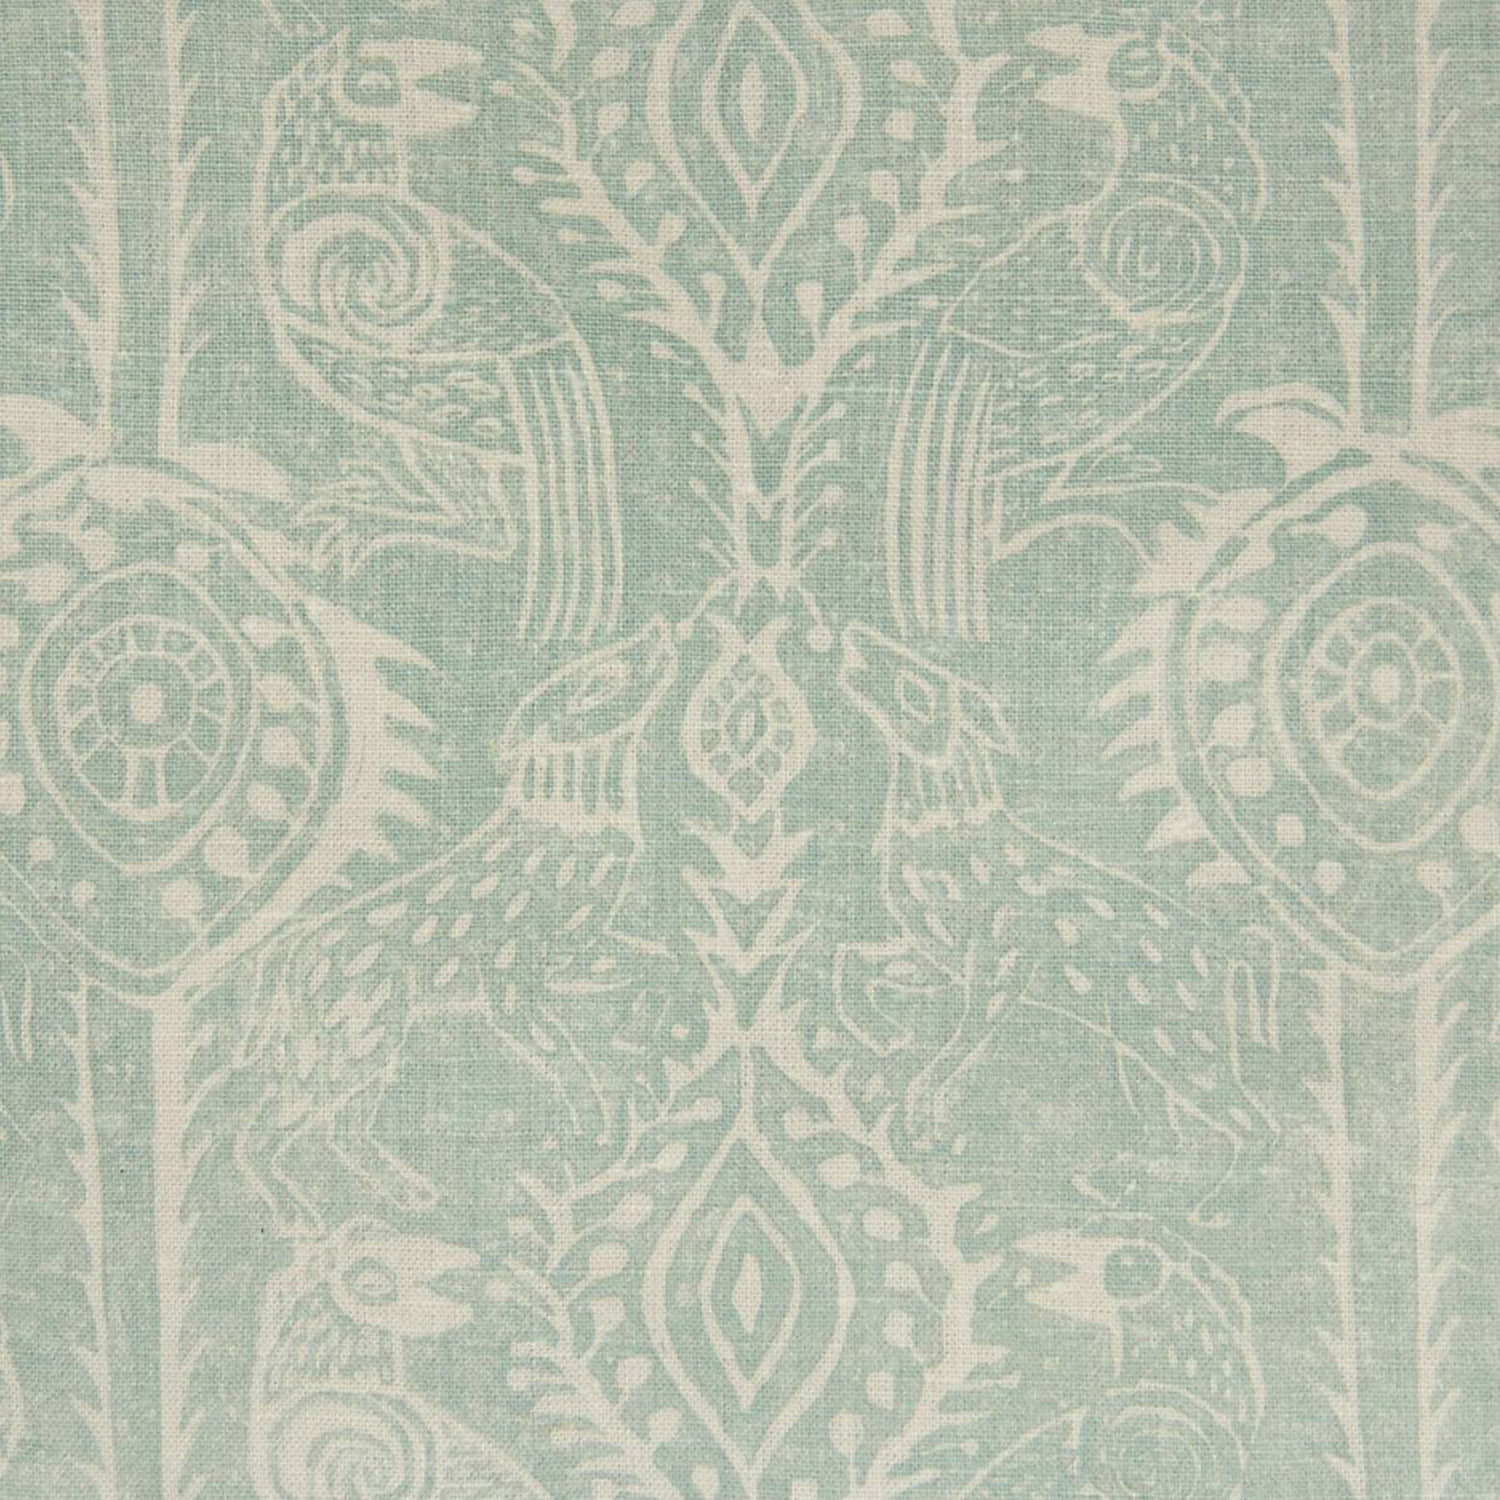 <p><strong>BEASTIES</strong>aqua 6700-01<a href=/the-peggy-angus-collection/beasties-aqua-6700-01>More →</a></p>